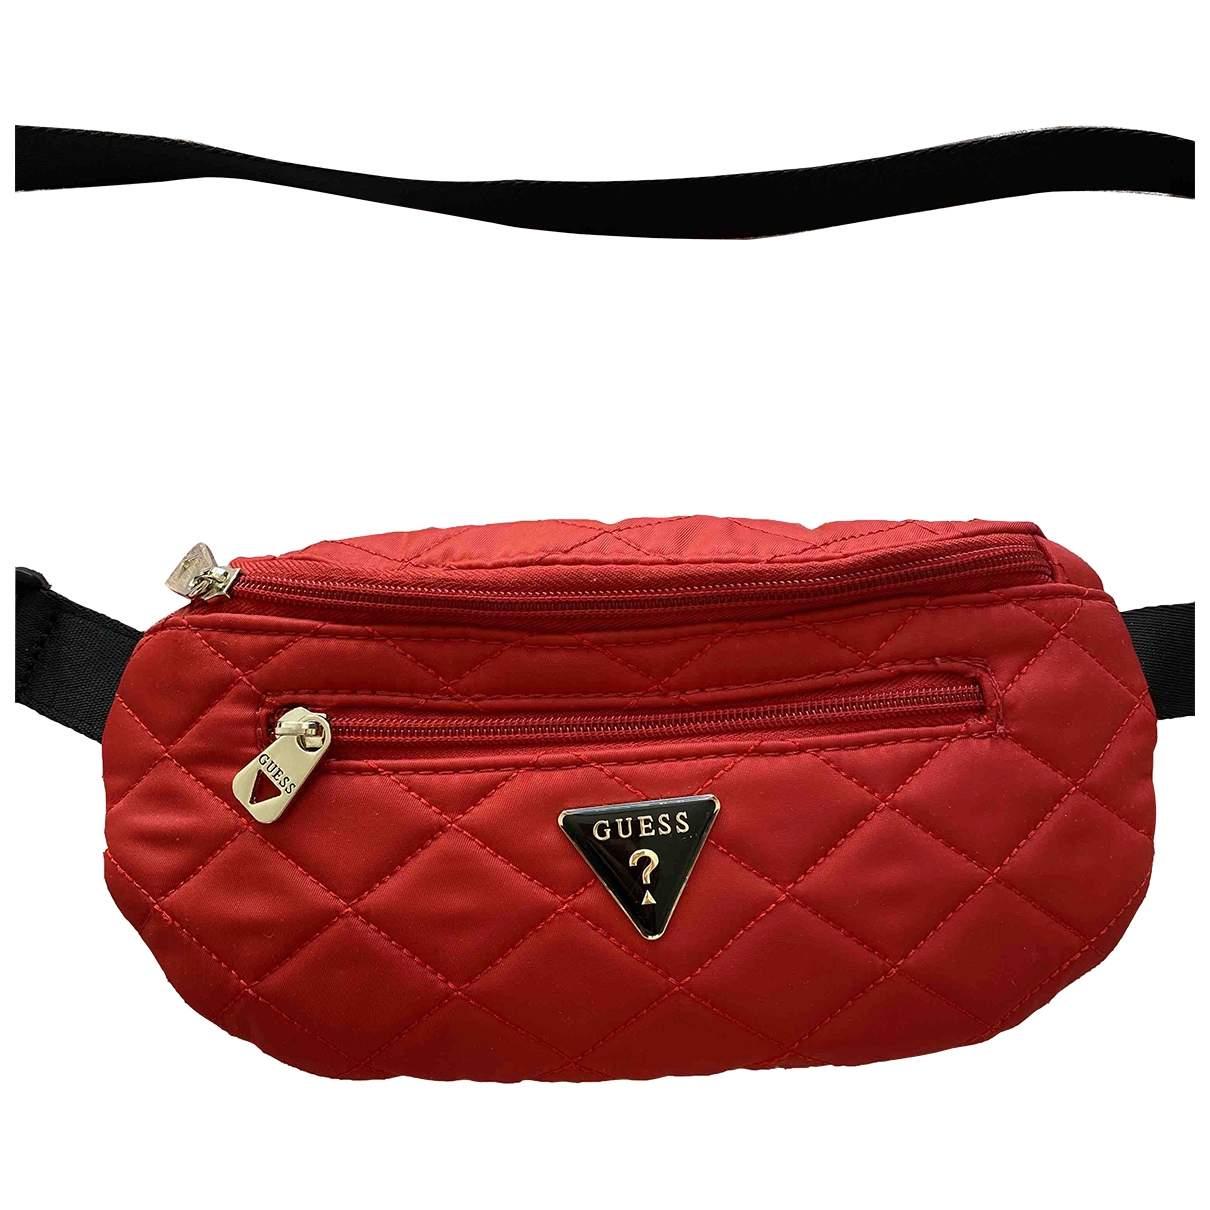 Guess \N Handtasche in  Rot Polyester